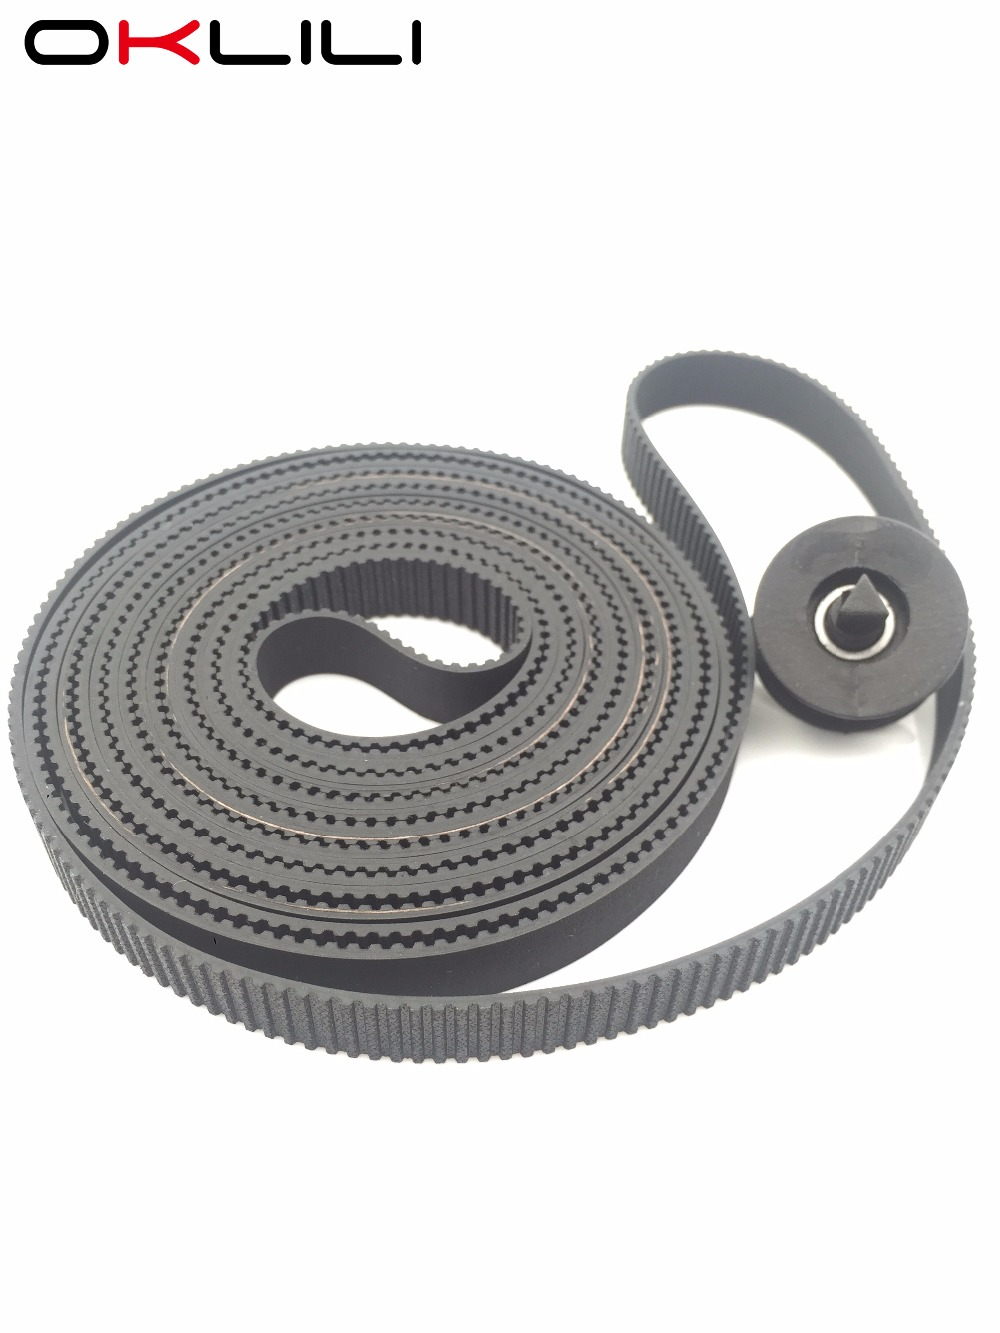 10PC* C7770-60014 Carriage Belt 42 B0 Size + Pulley for HP DesignJet 500 500PS 800 800PS 510 510PS 815 CC800PS Plus 820 815MFP free shipping original new c7770 60274 carriage assembly trailing cable kit b0 for hp500 500ps 800 800ps 815 820